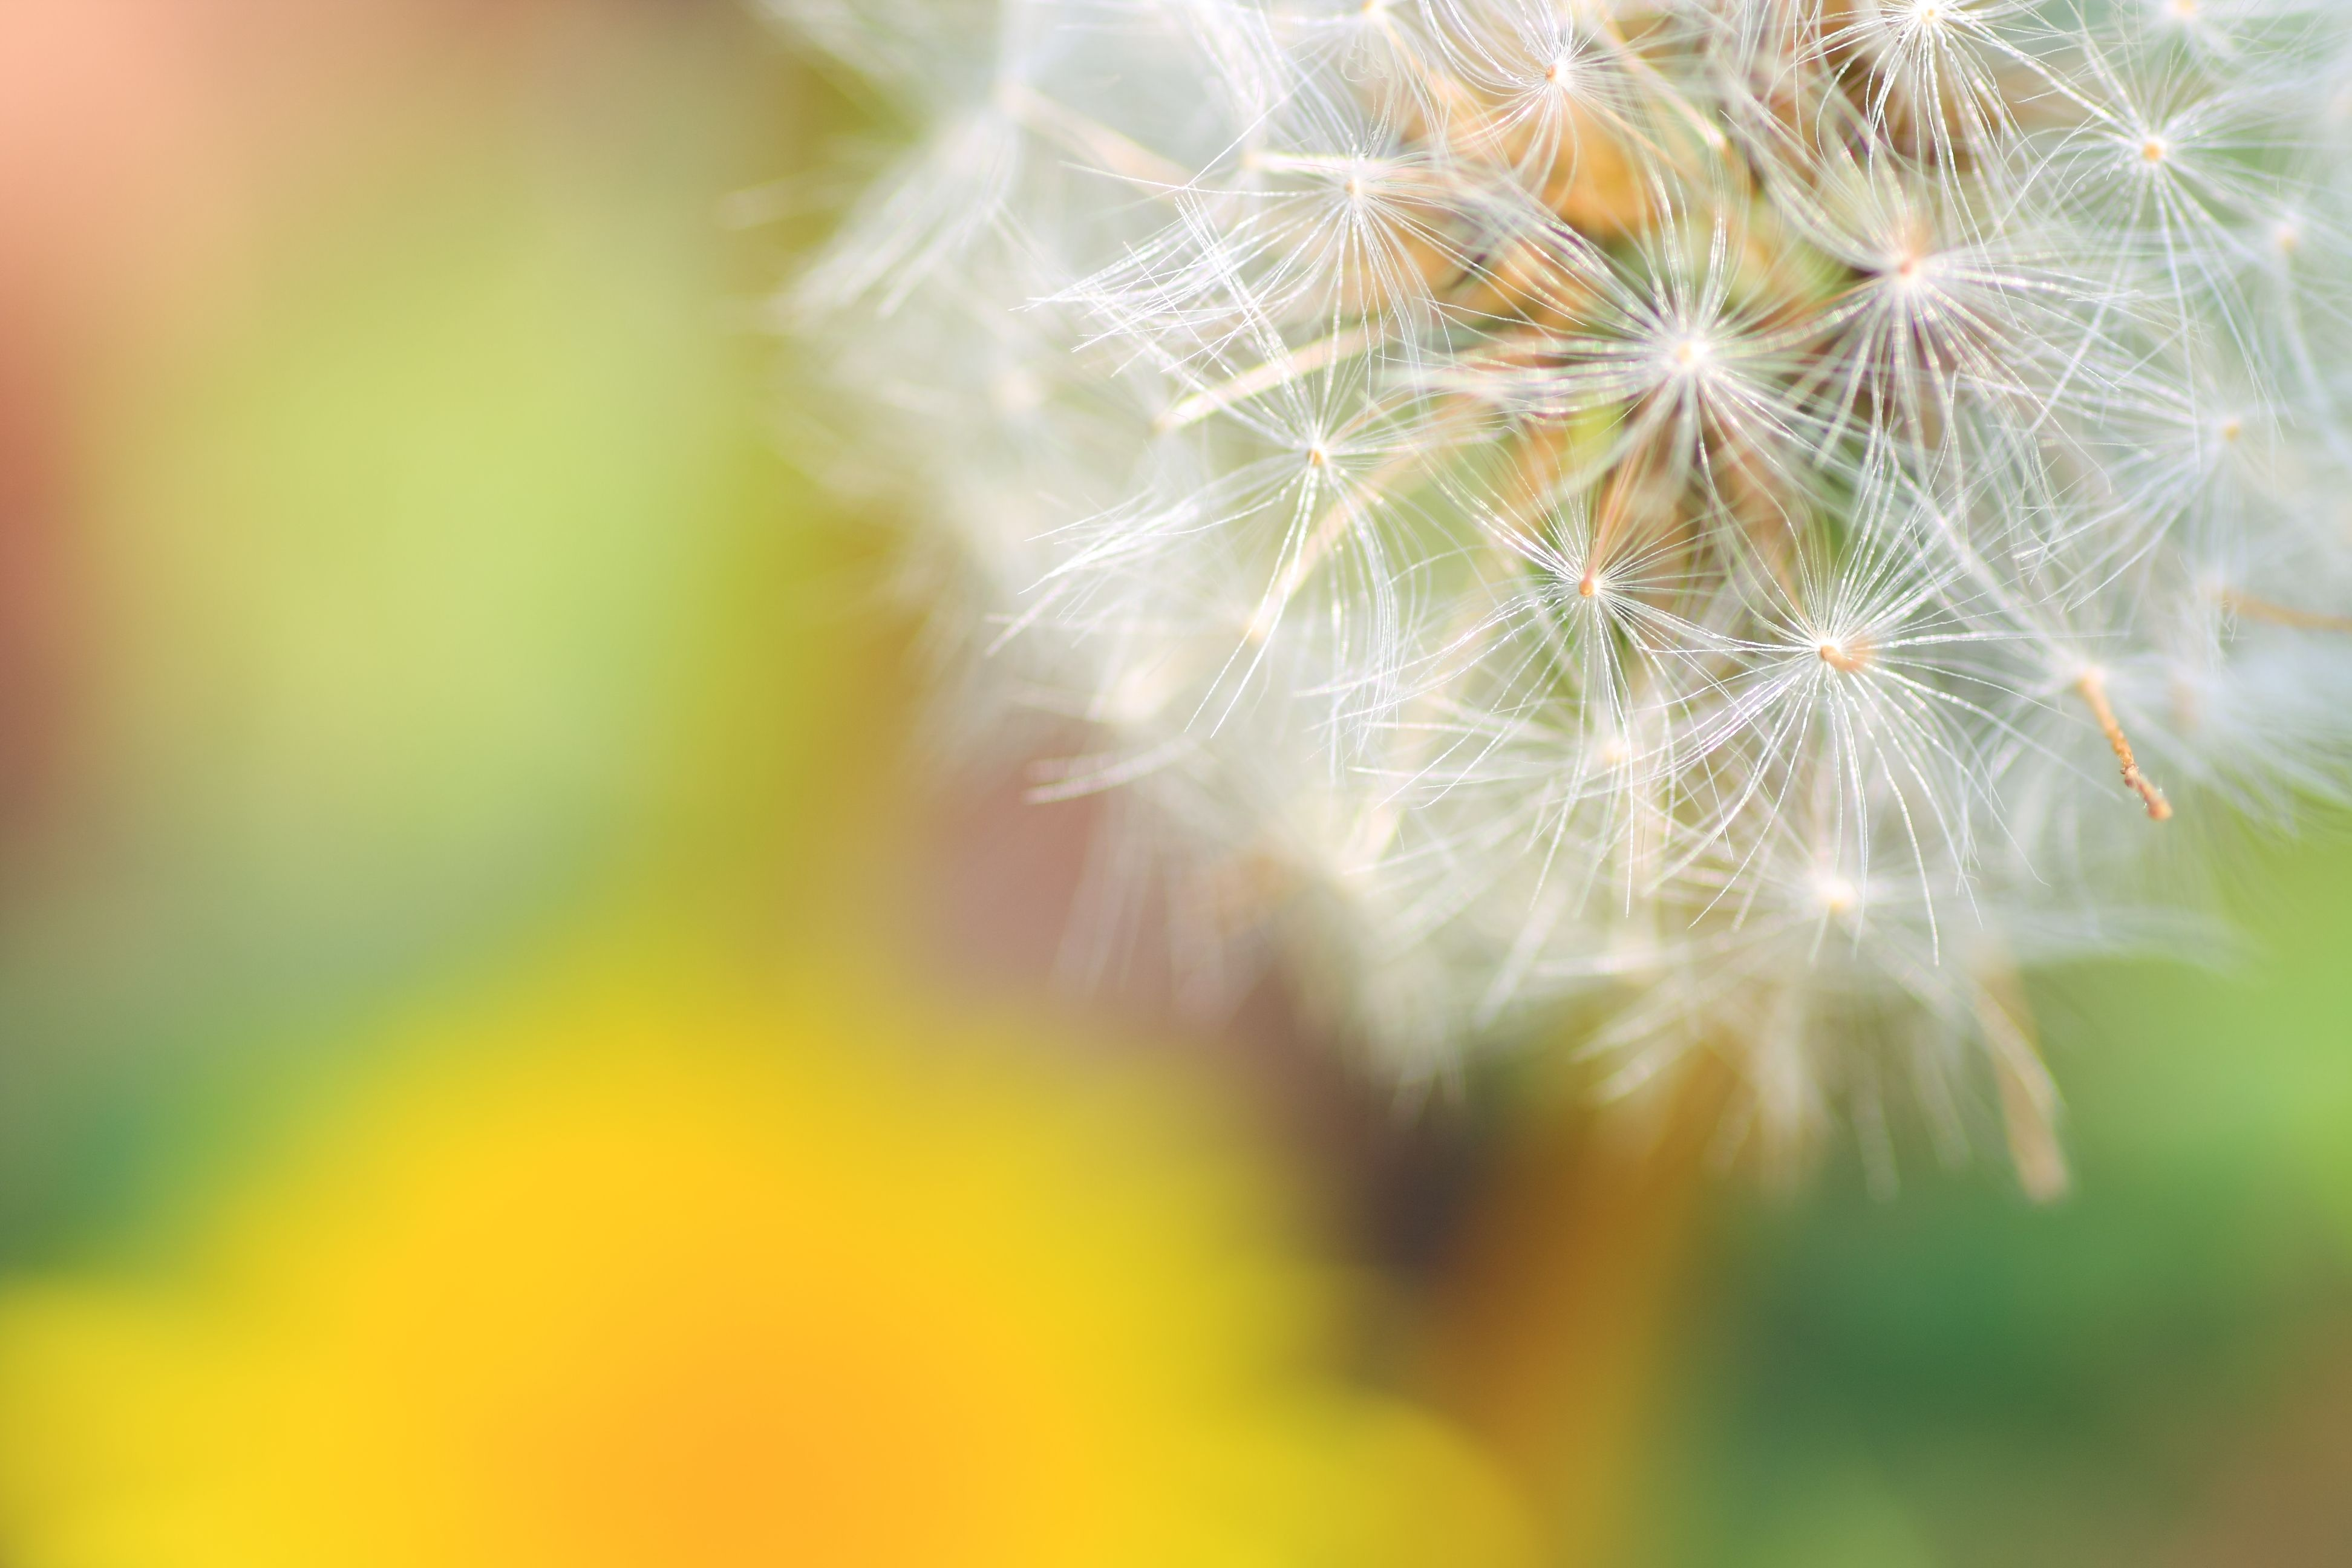 Dandelion Is Steeped In Symbolic Meaning Including Vitality Life And Purity As A Symbol Of The Sun For Both Its Fiery Color And Its Na Dandelion Psd Flowers